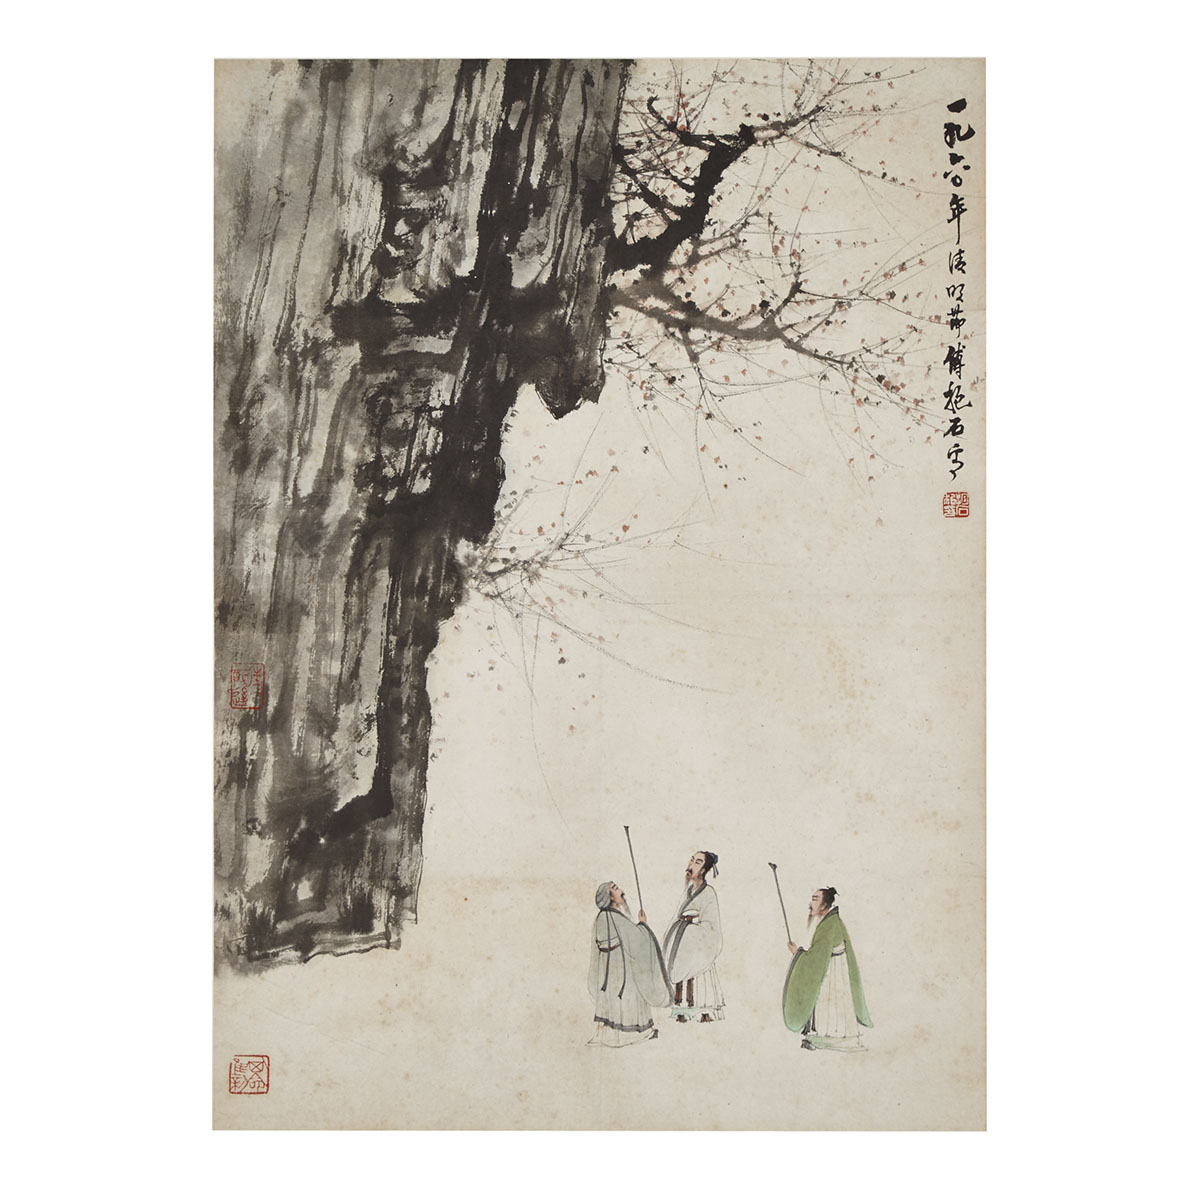 Attributed to FU BAOSHI (1904-1965)